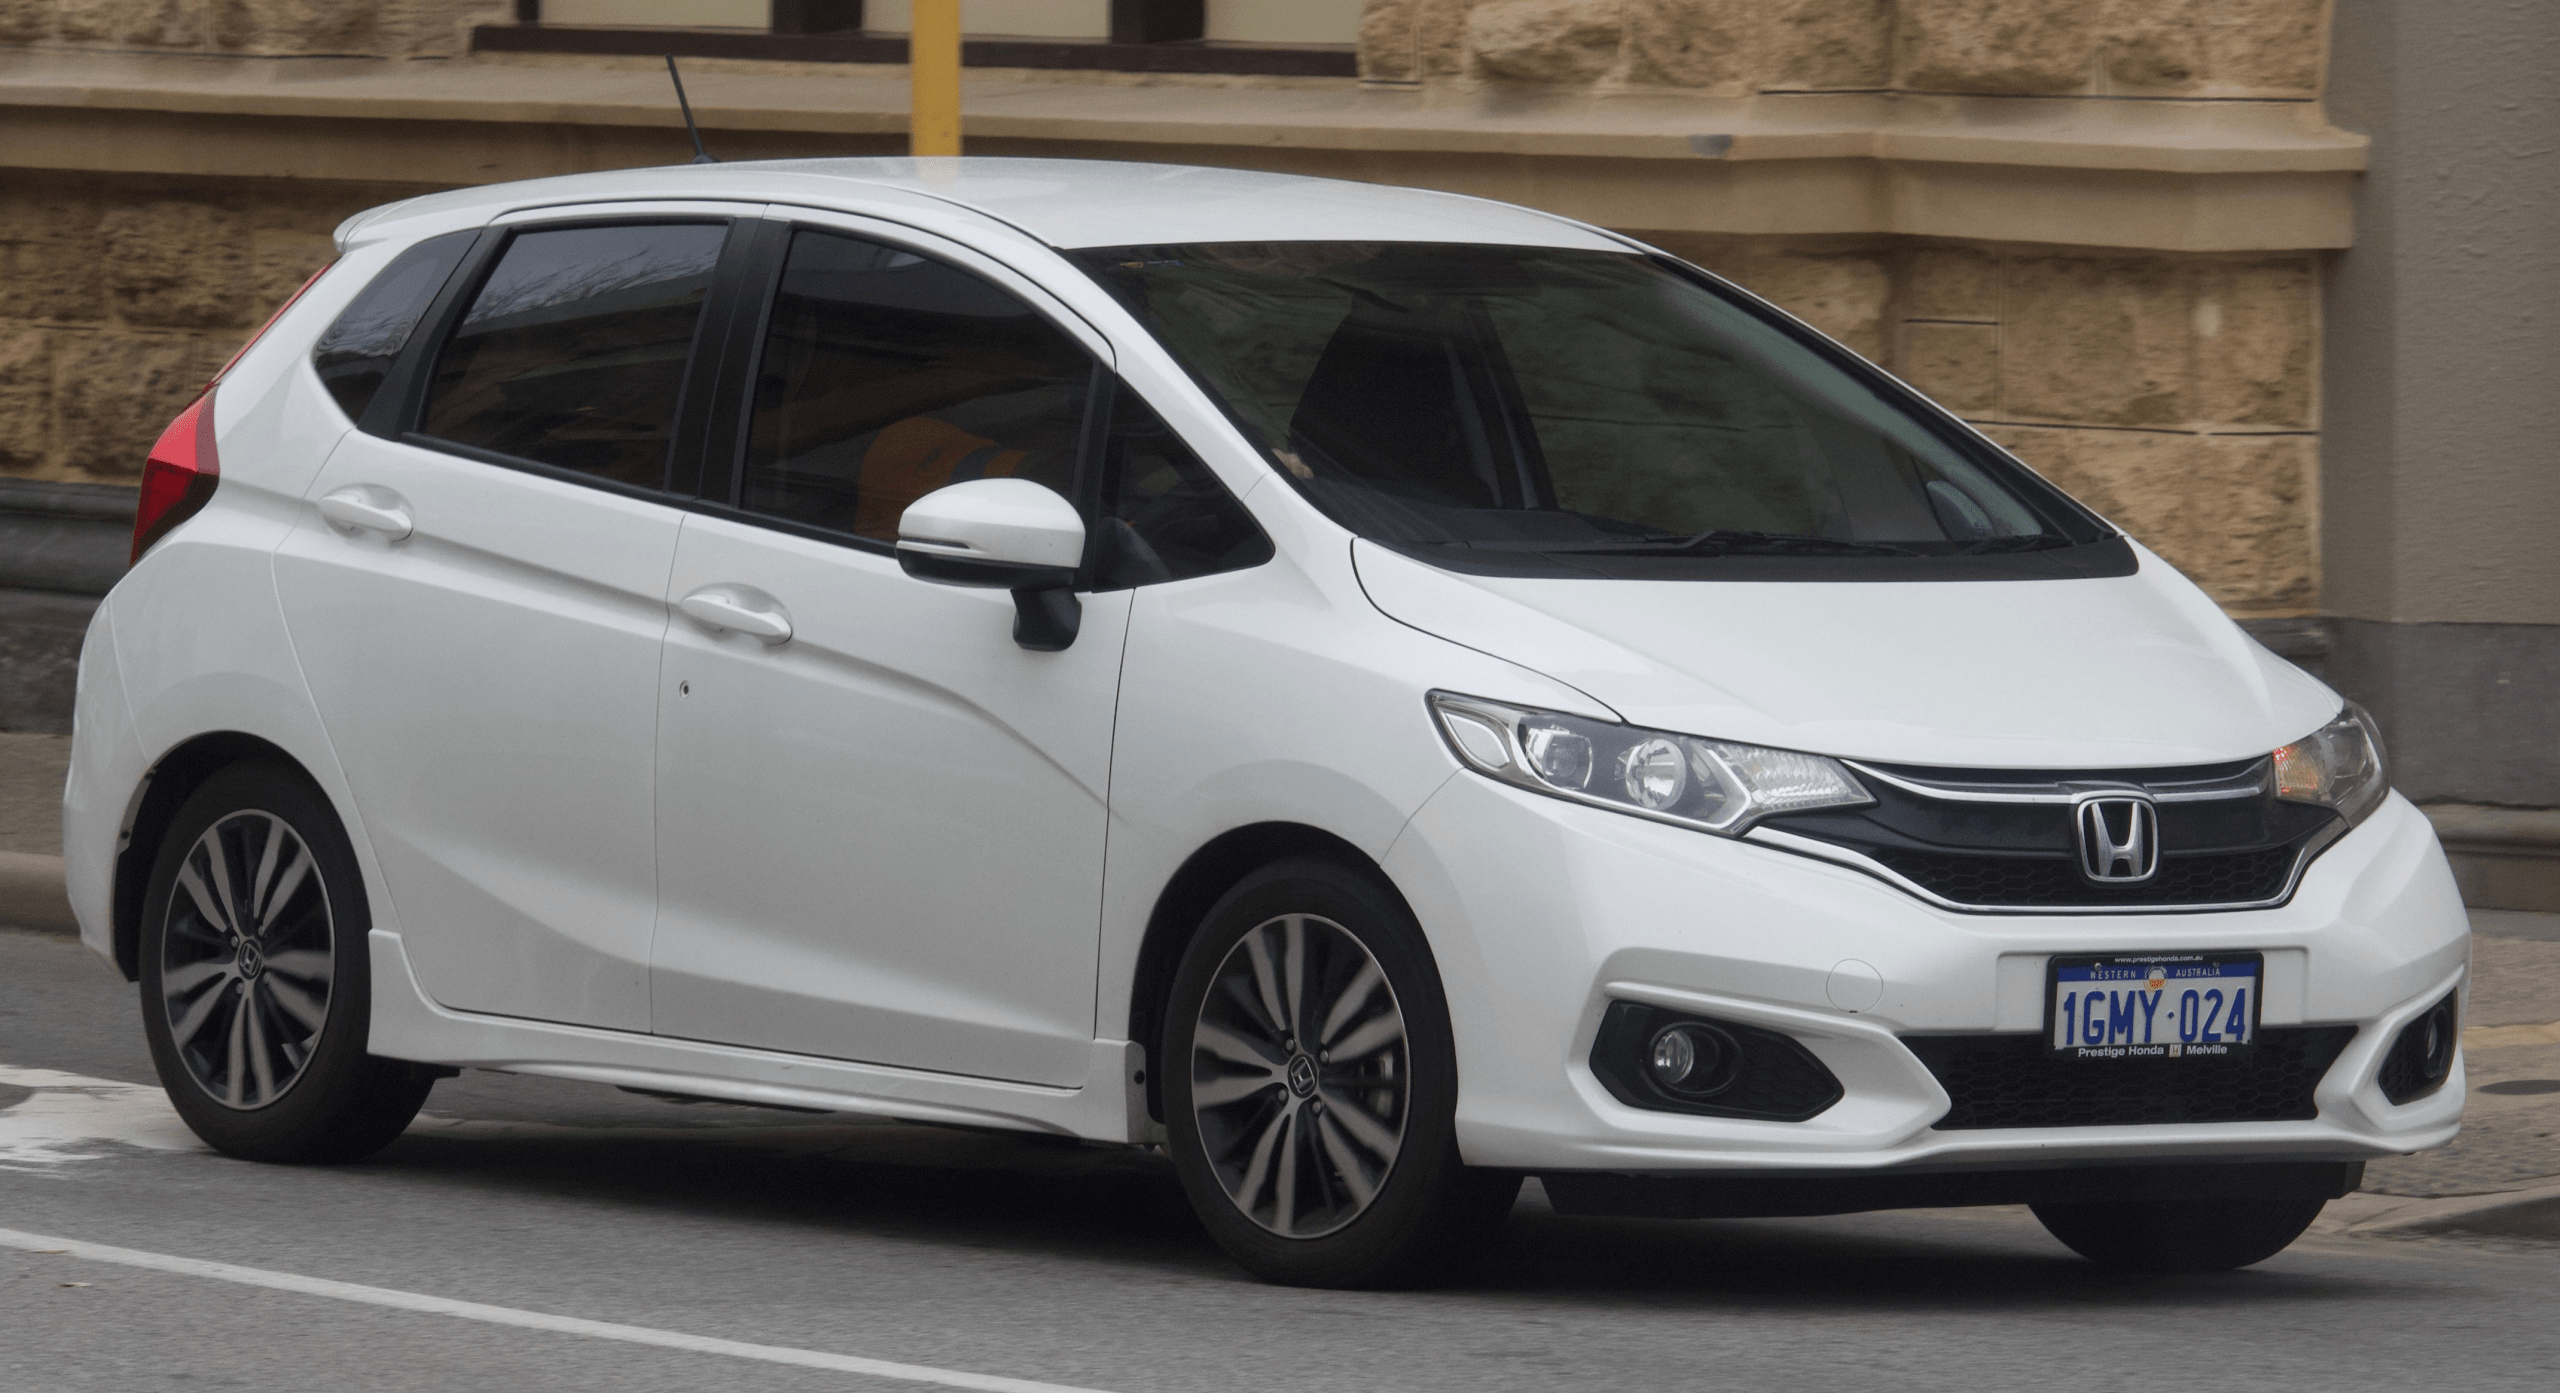 2020 Honda Vezels Price In 2020 Honda Fit Honda Jazz Most Fuel Efficient Cars